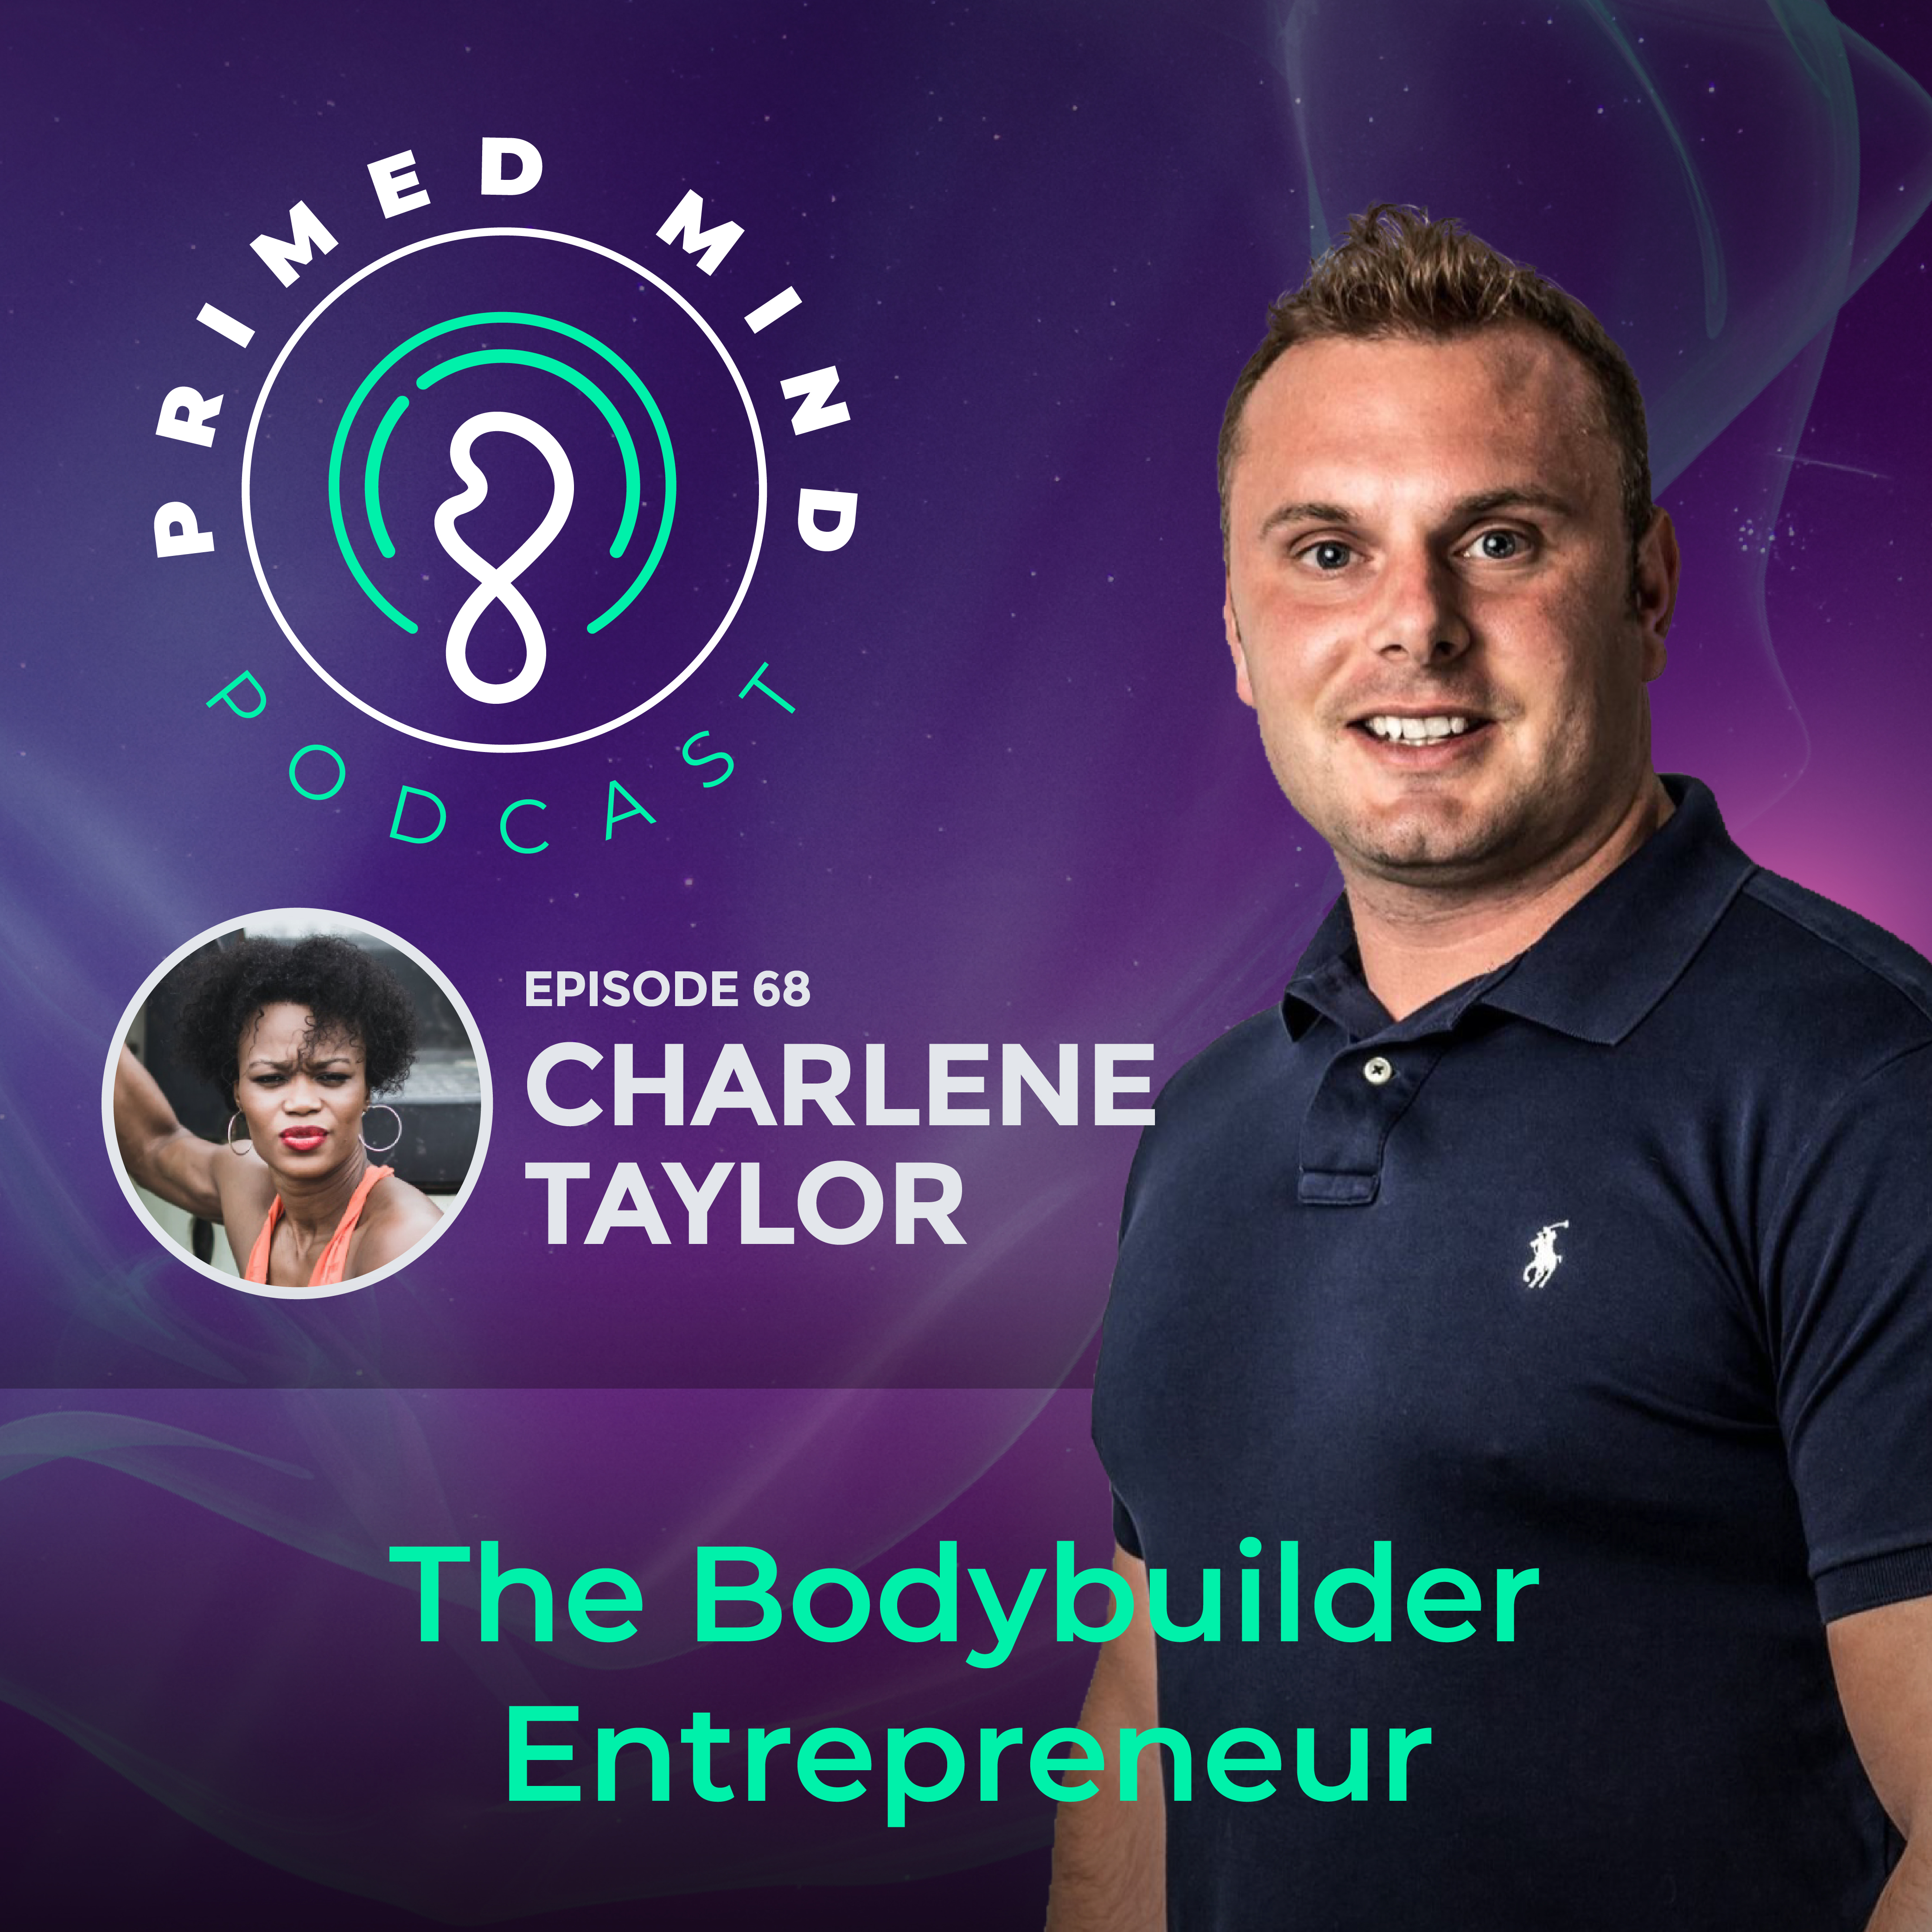 068 - Charlene Taylor - The Bodybuilder Entrepreneur